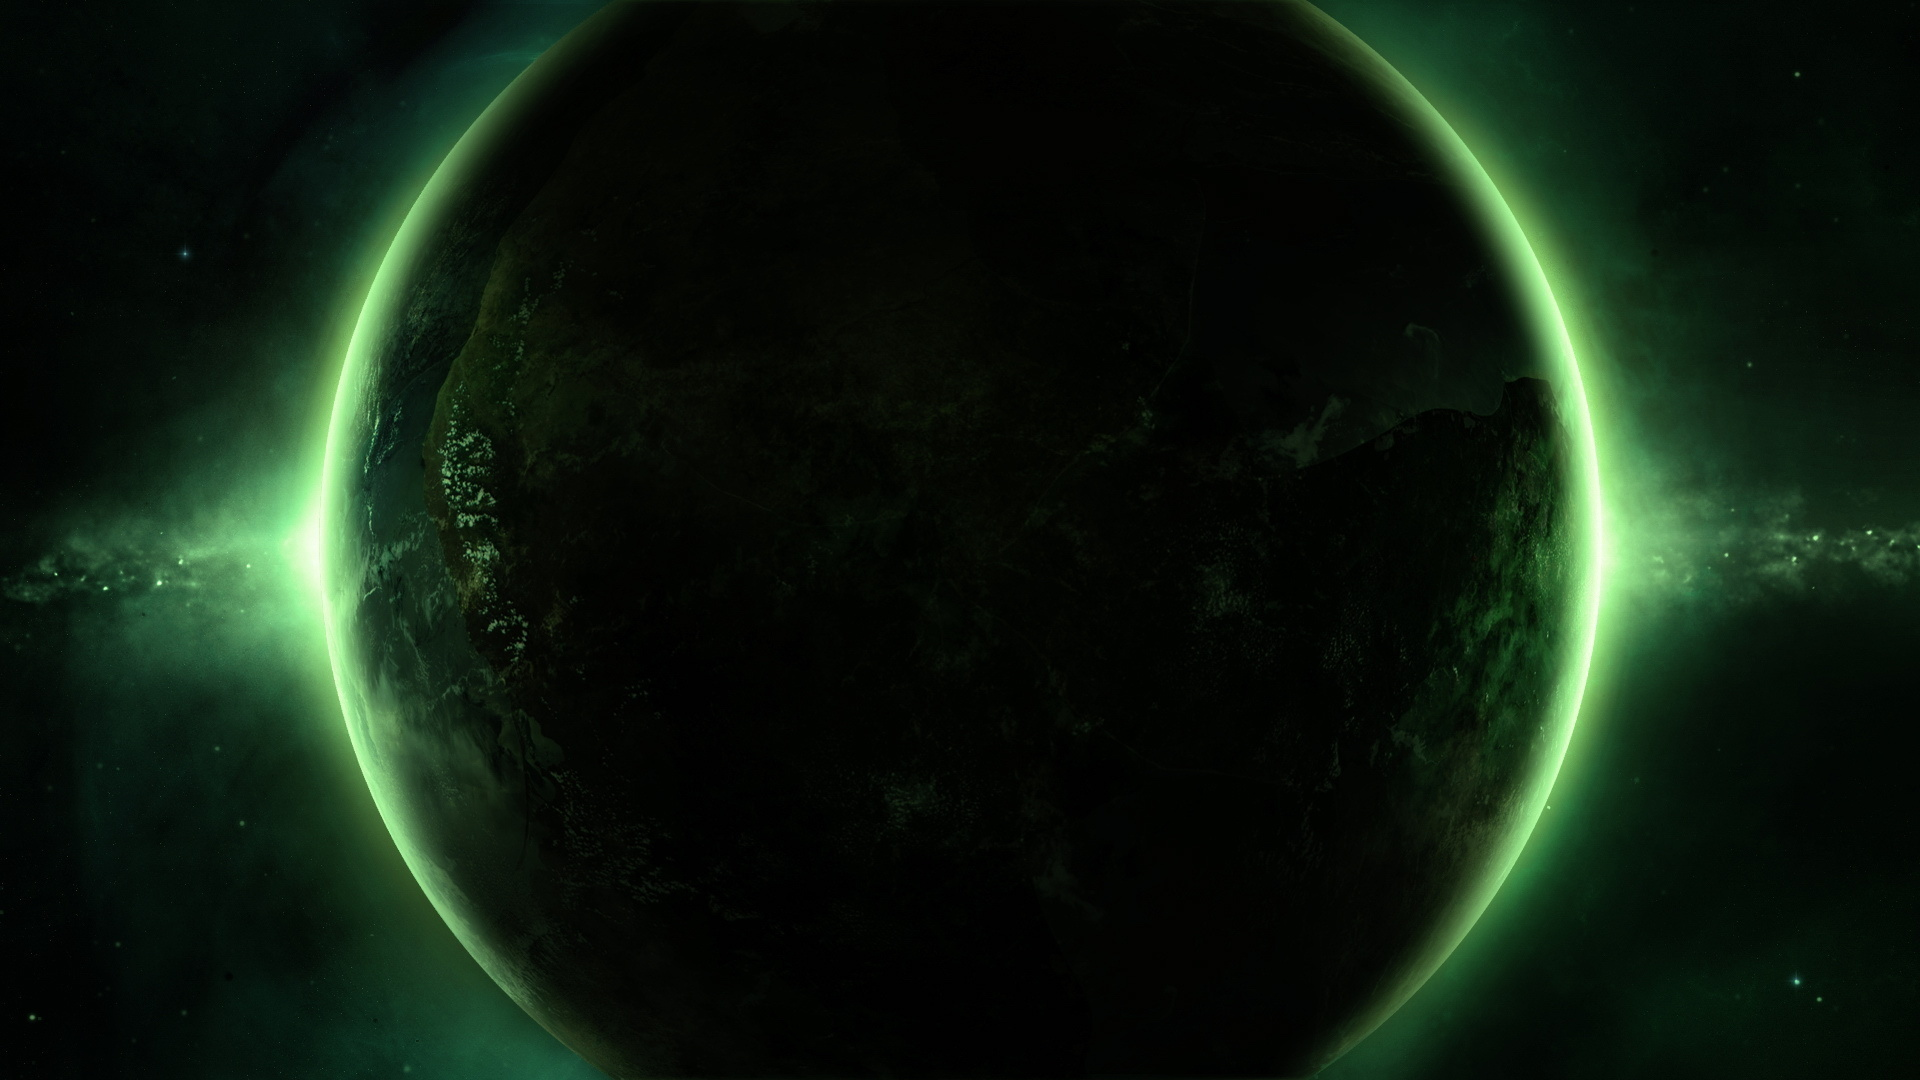 space, planet, green - wallpaper #71213 (1920x1080px) on wallls